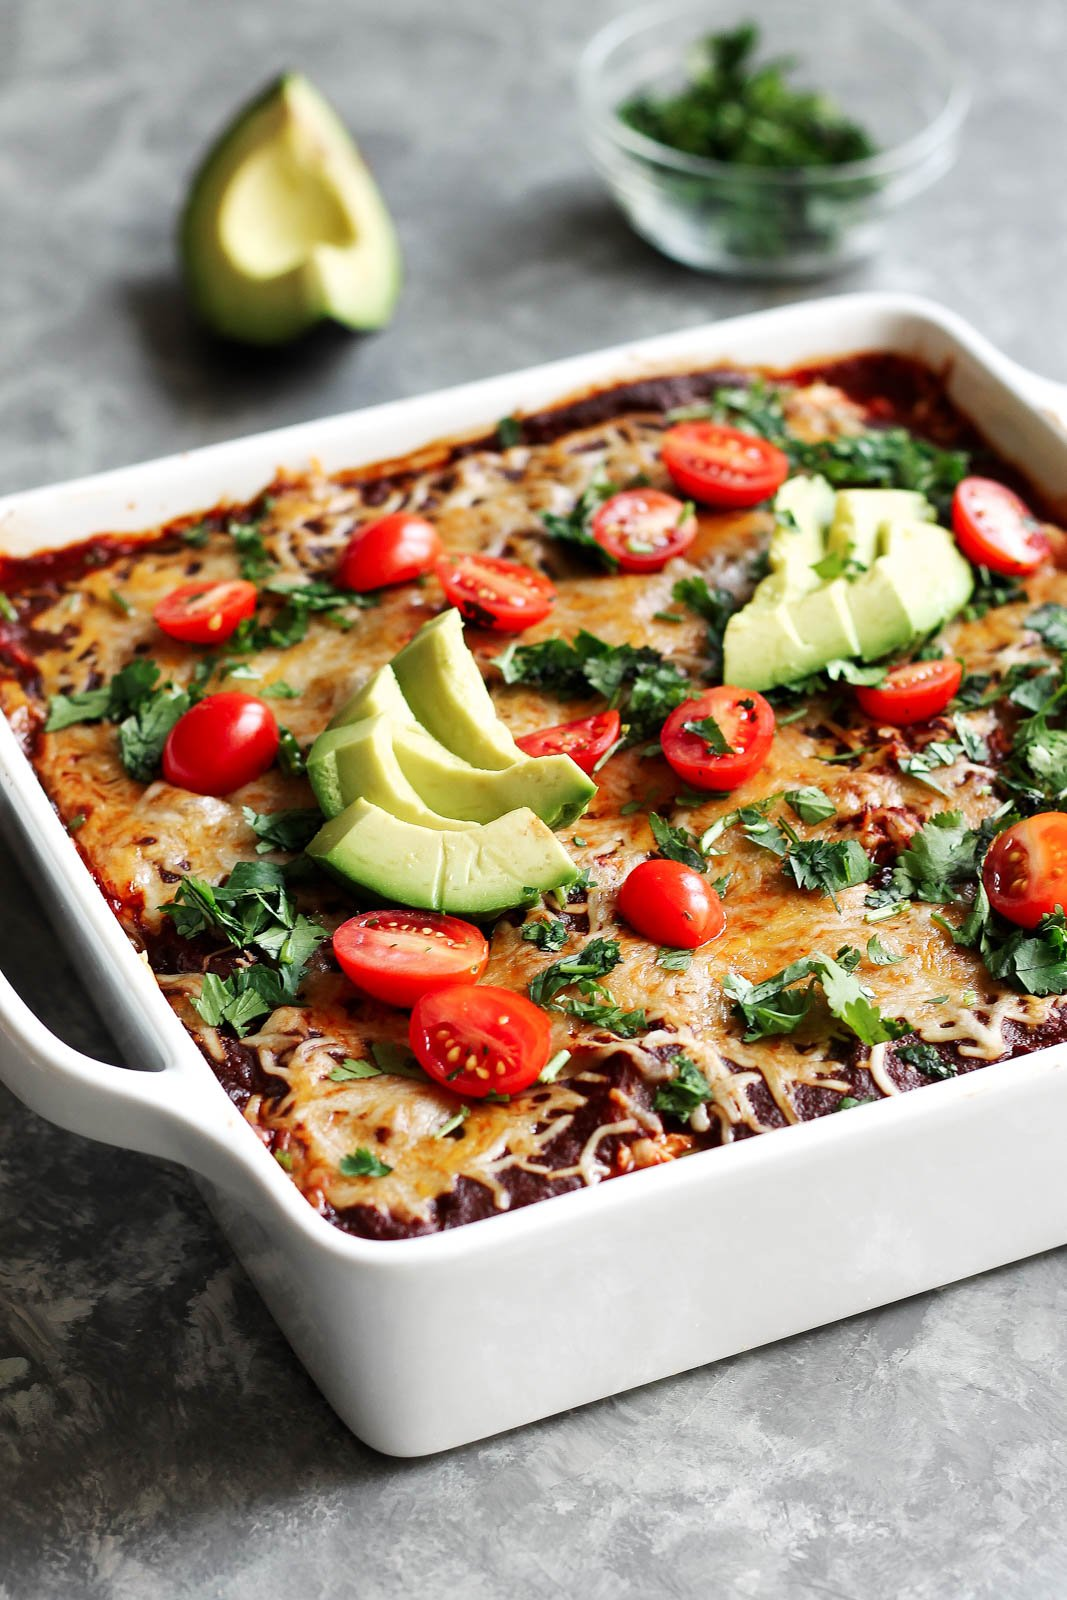 Low Carb Chicken Zucchini Enchilada Bake With Layers Upon Layers Of Creamy,  Flavorful Goodness: